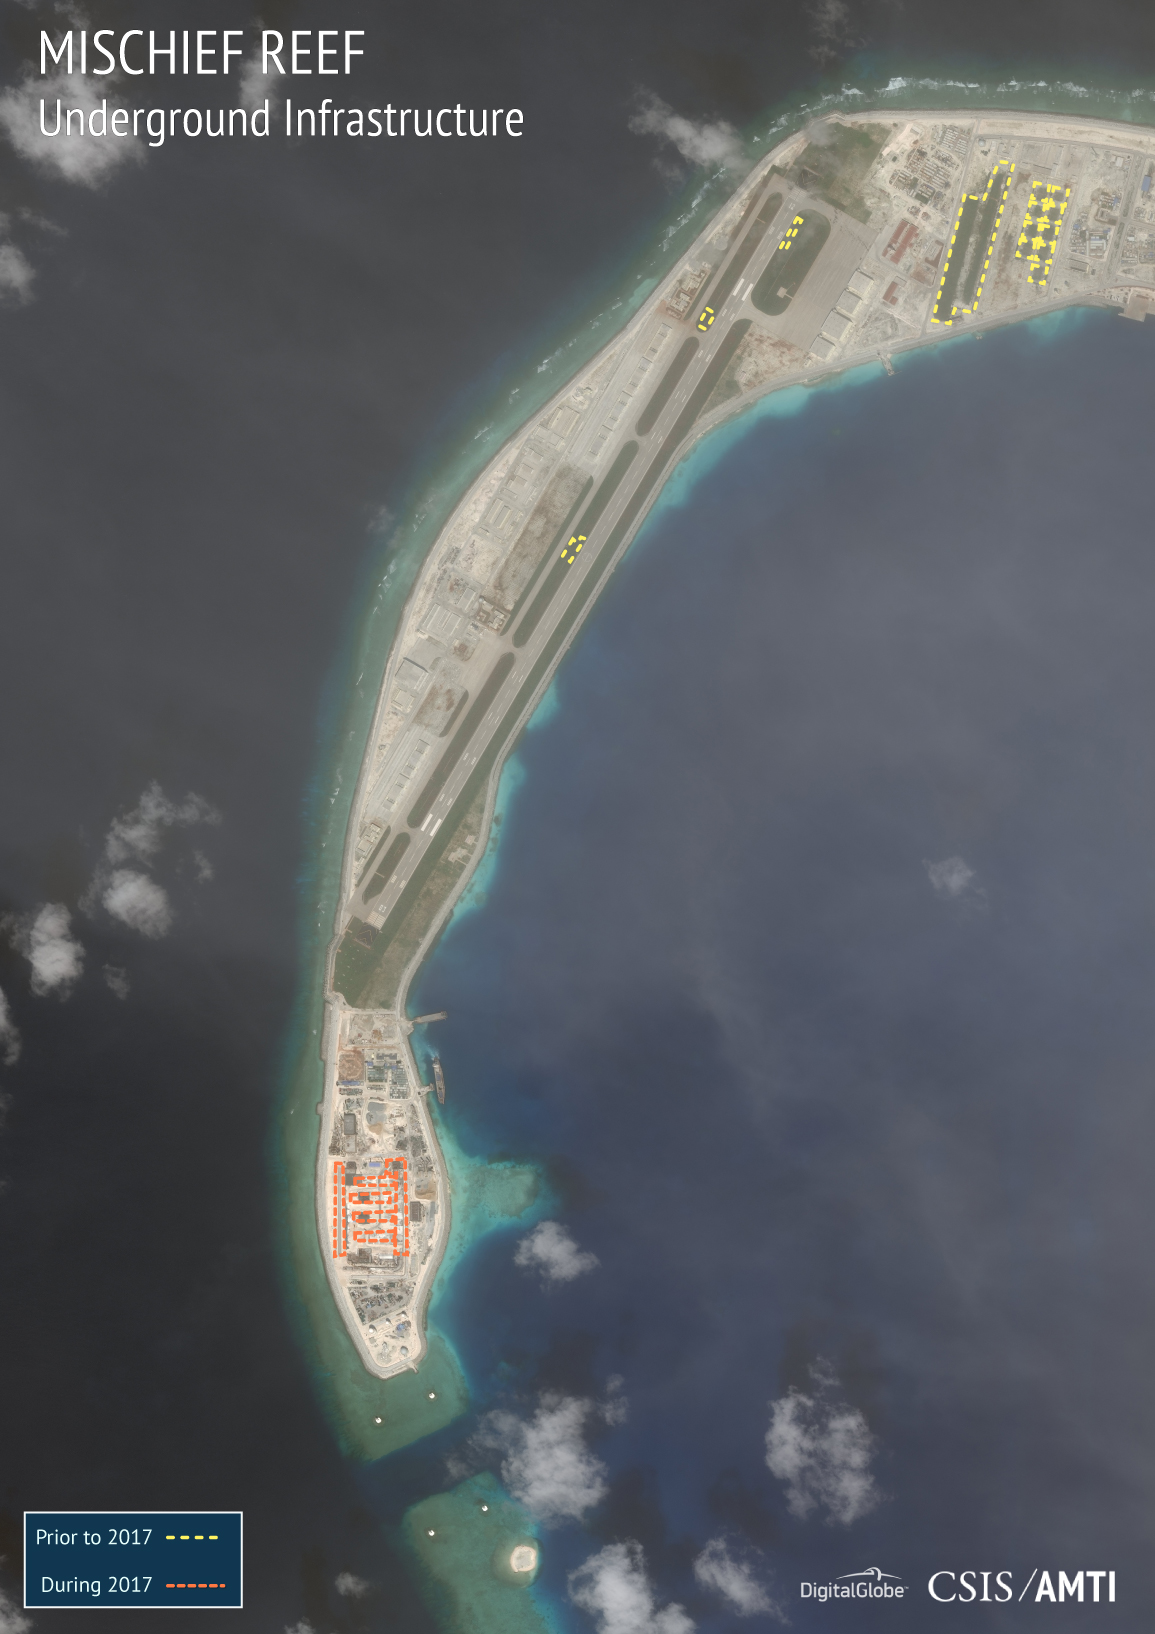 China build artificial islands in South China Sea - Page 5 Mischief_11_16_2017_R1C1_underground